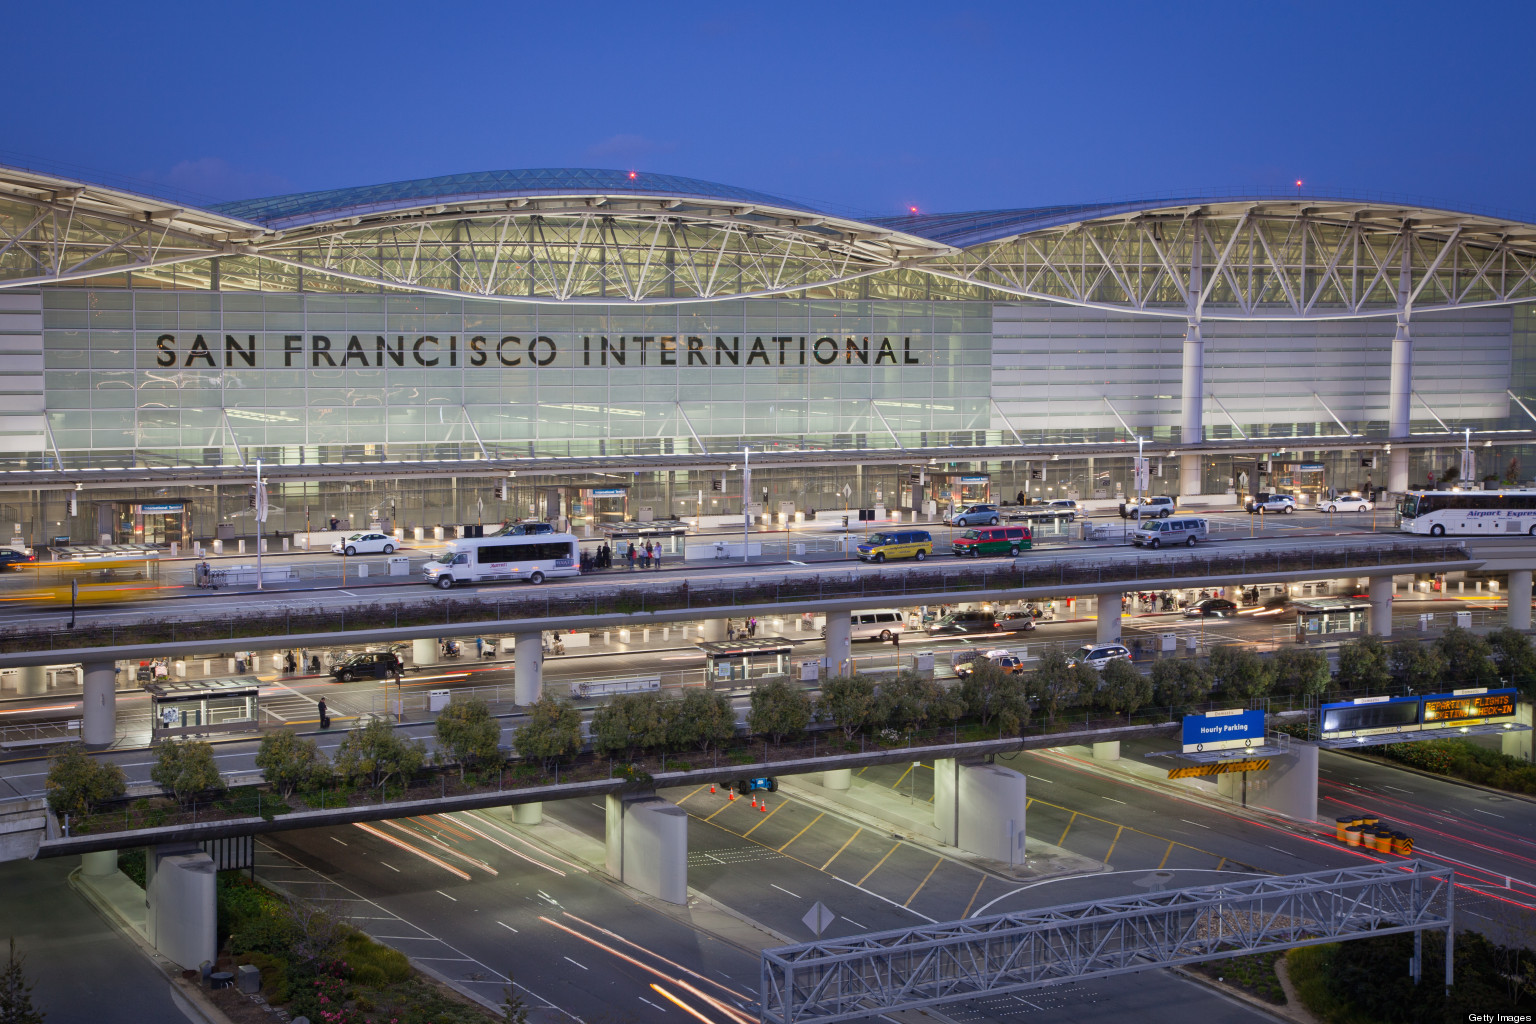 San Francisco International Airport SFO